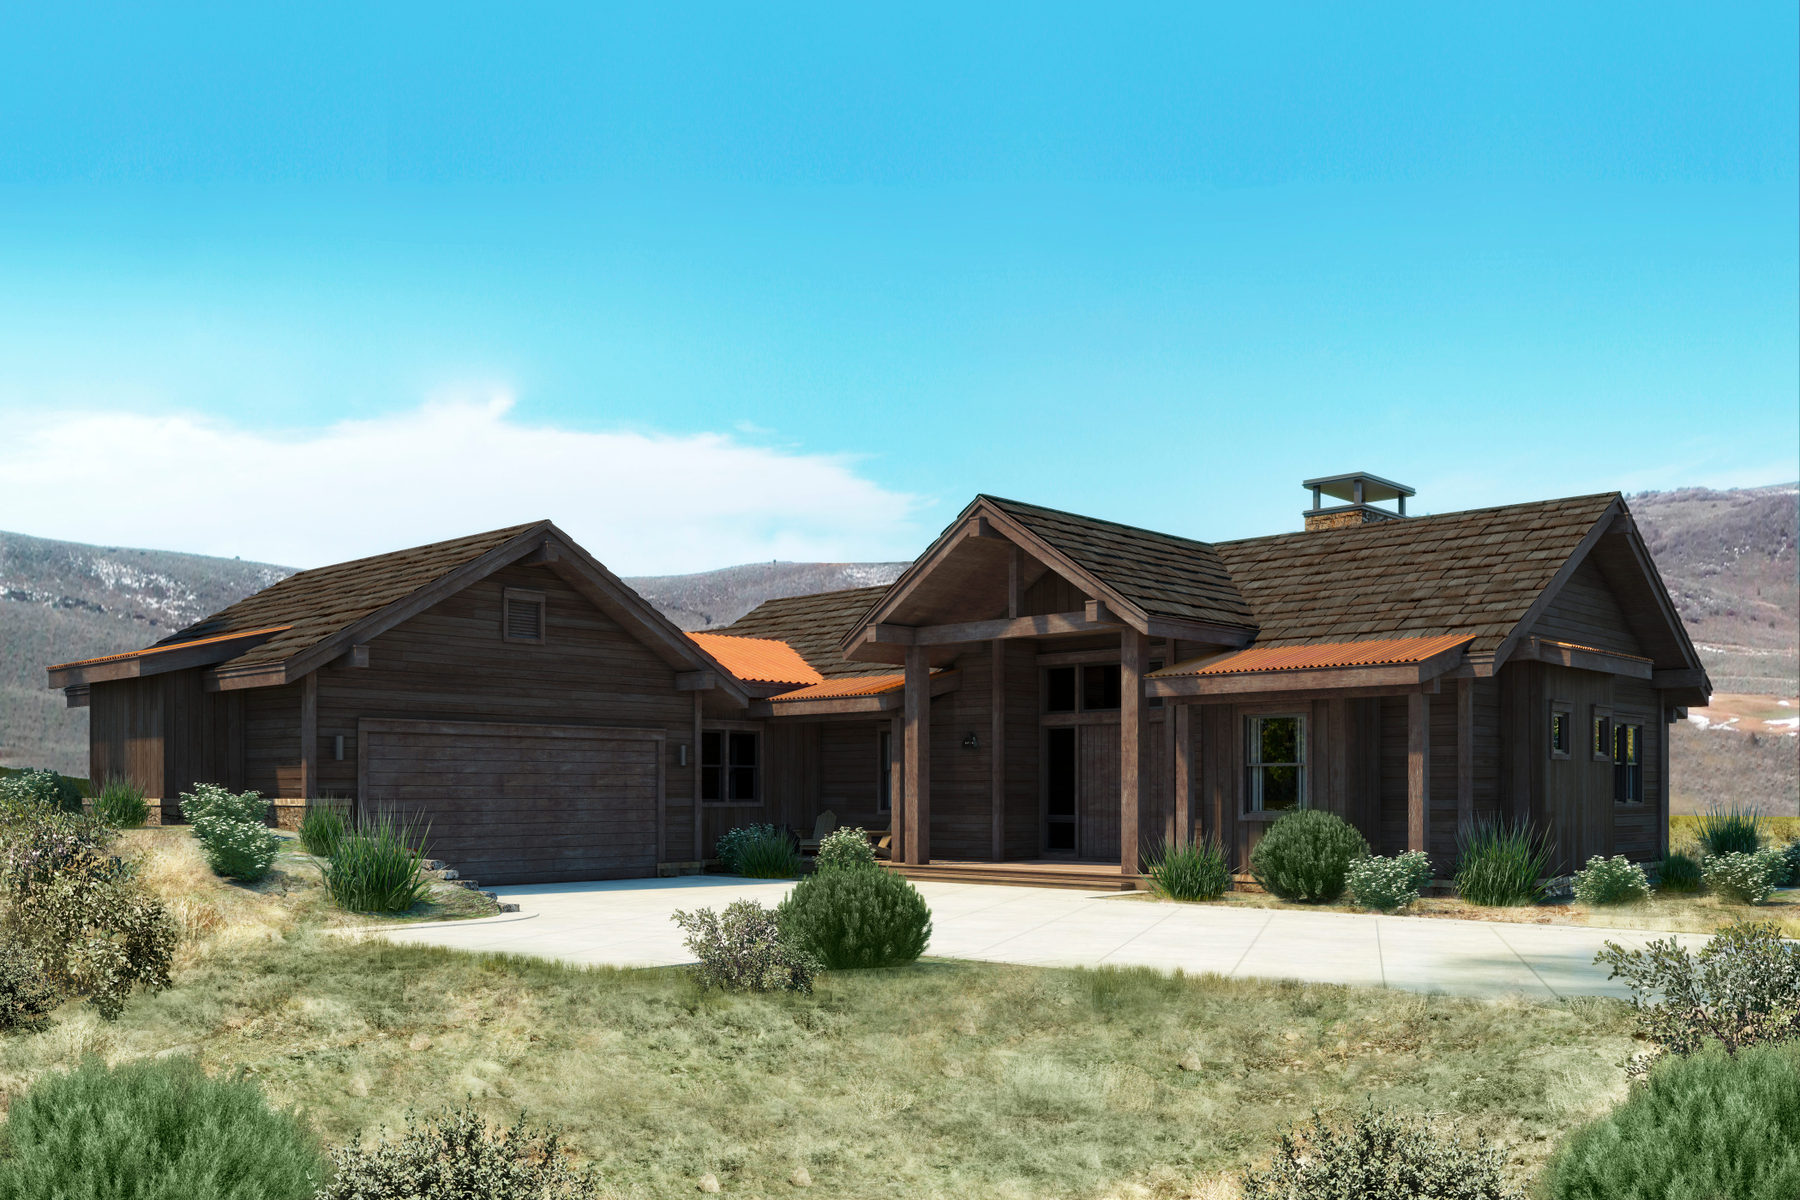 Villa per Vendita alle ore Aspen Cabin with Spectacular Views 6756 E Riparian Way Heber City, Utah 84032 Stati Uniti